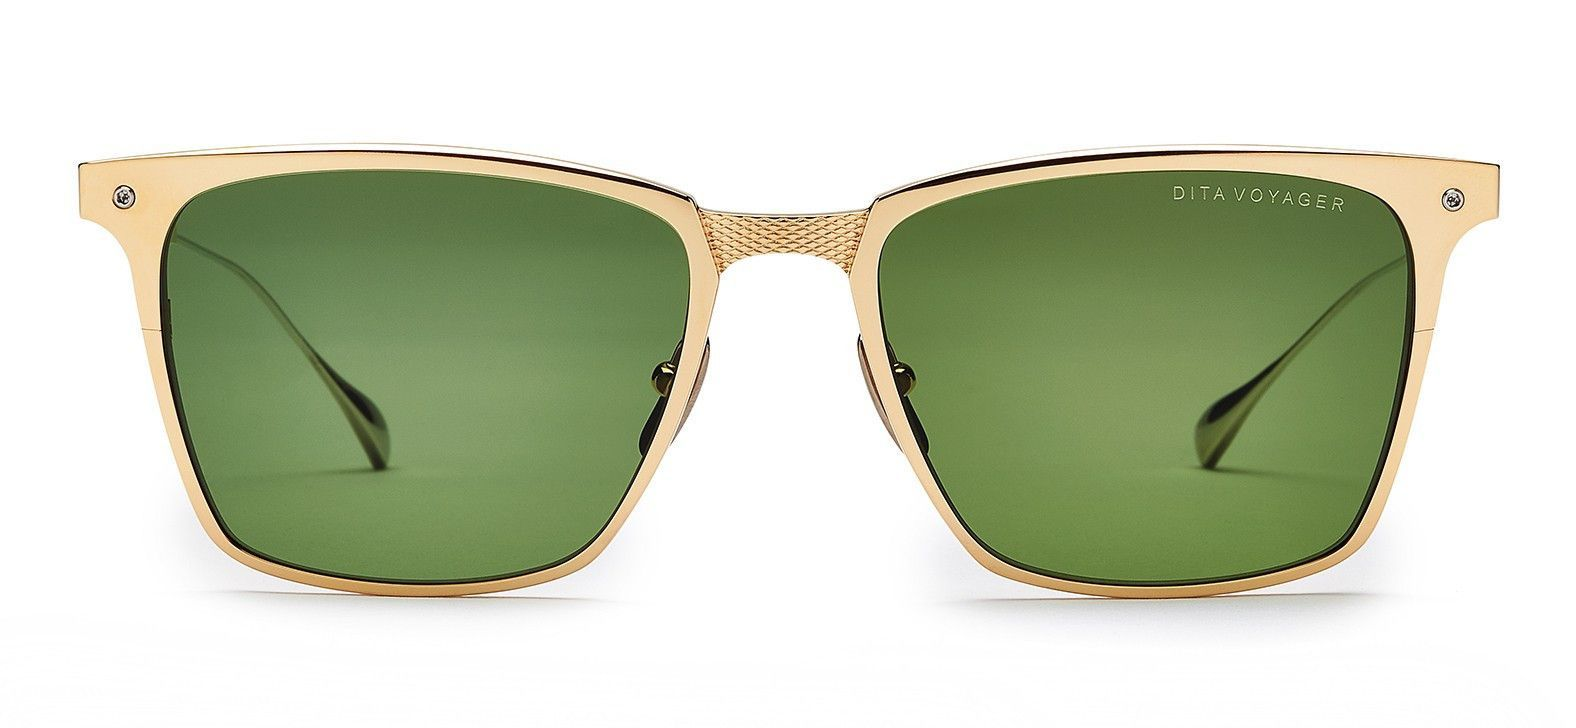 64143971896 Voyager Square Sunglasses in Gold   Black